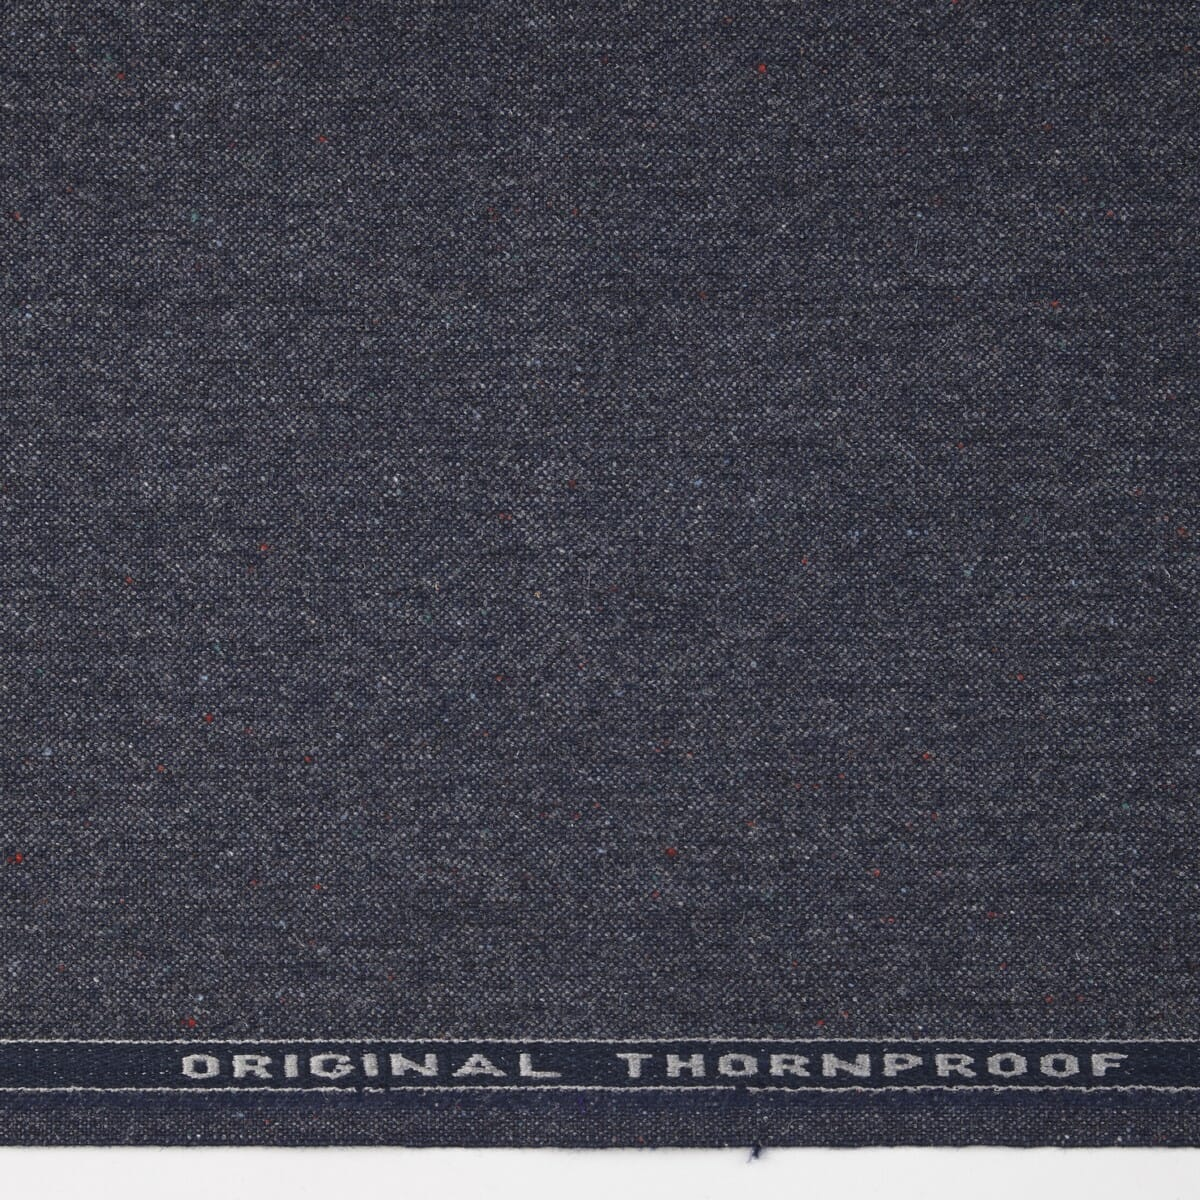 Thornproof tweed by Porter and Harding